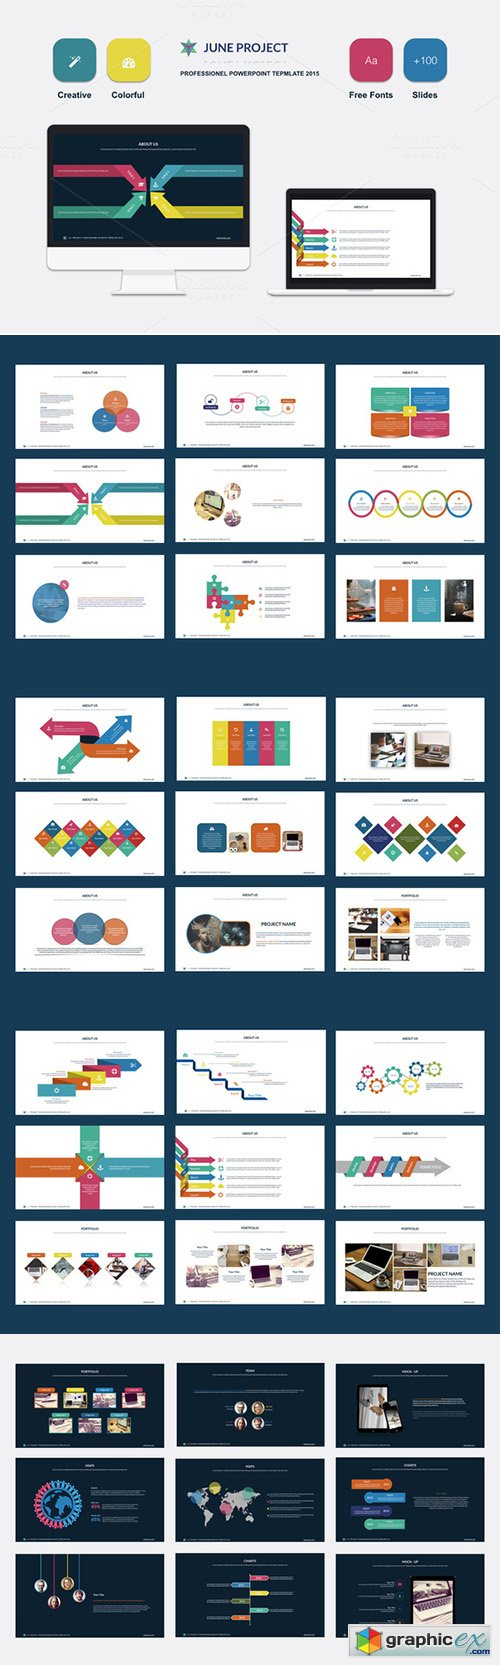 June Powerpoint Template